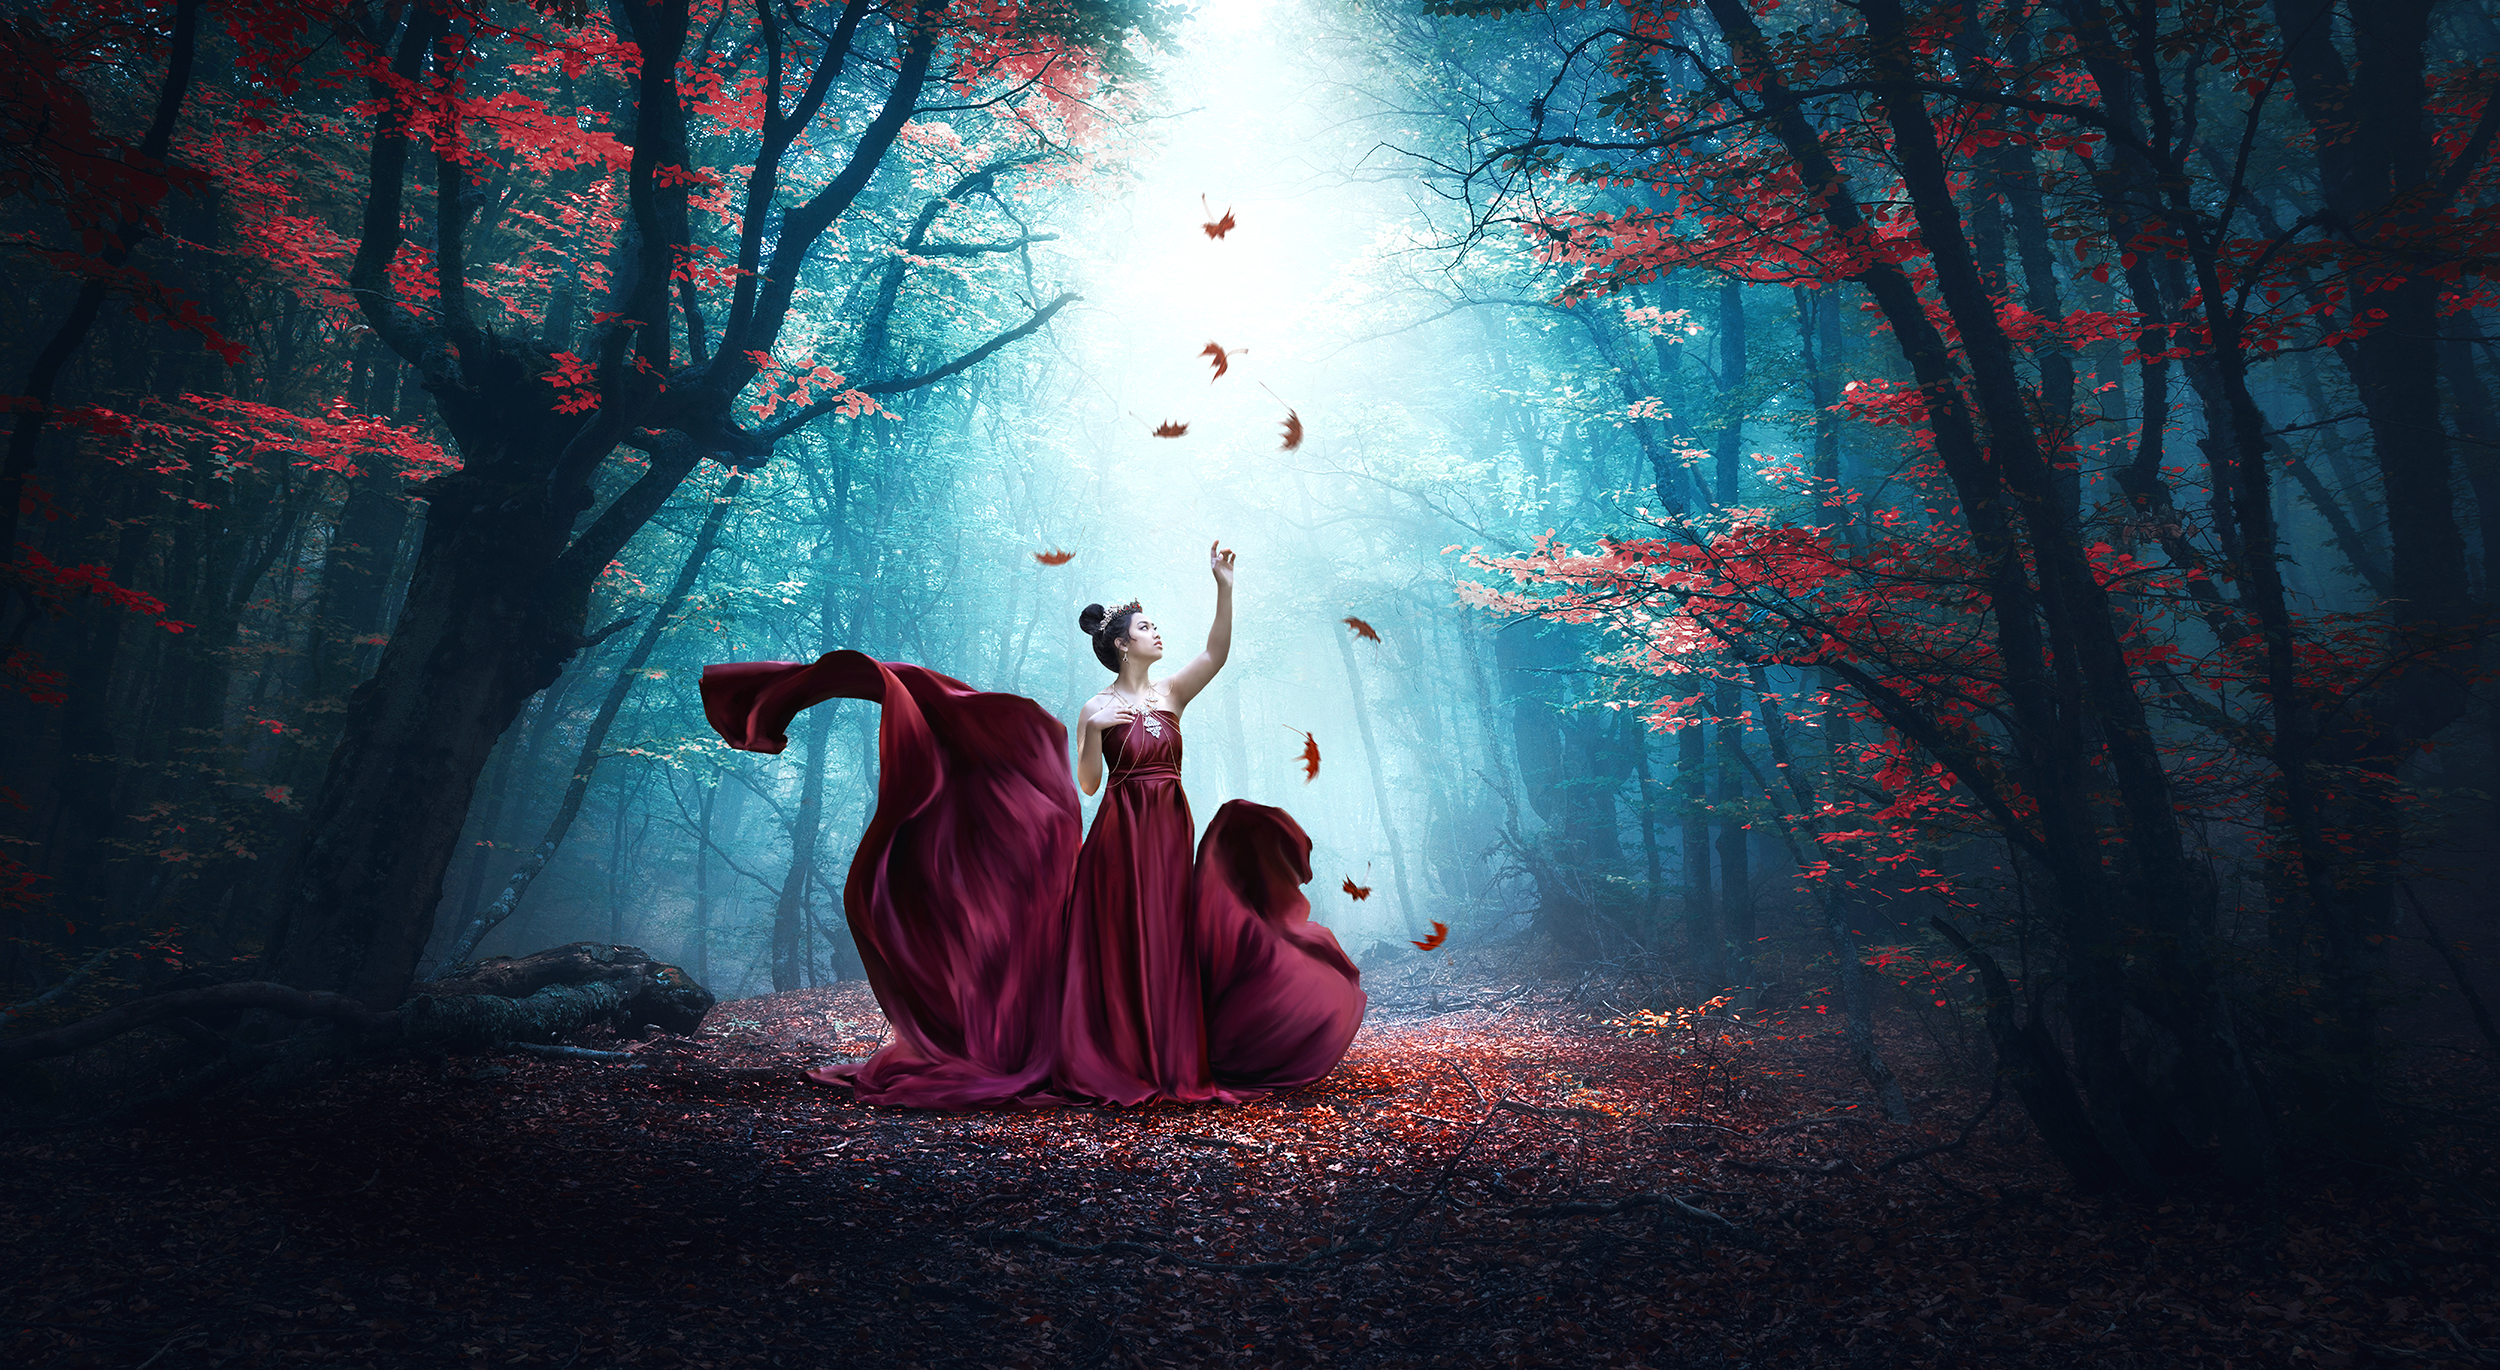 Lady in red dress in forest with leaves falling